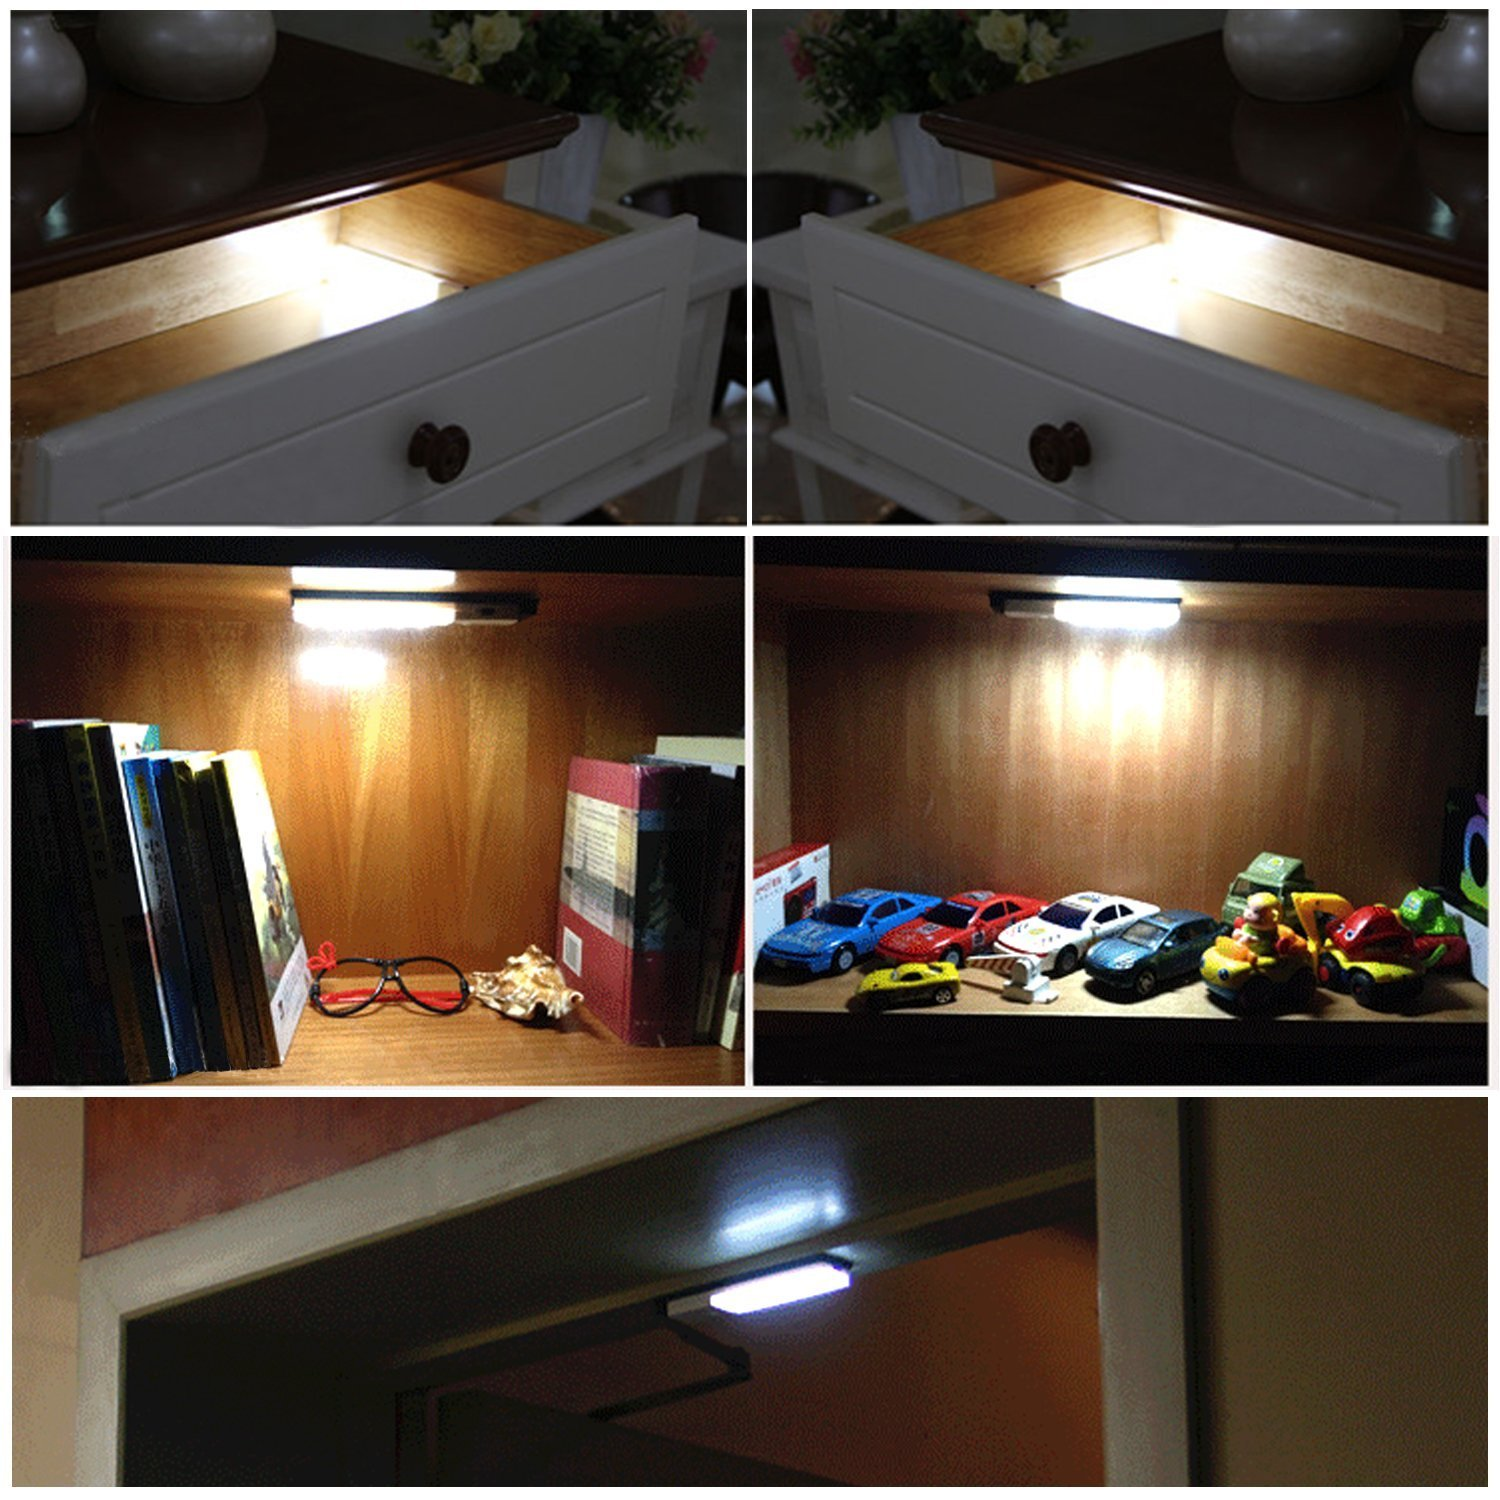 nheit shelf awesome sch cabinet us oksunglassesn under kitchen lighting over counter schonheit led